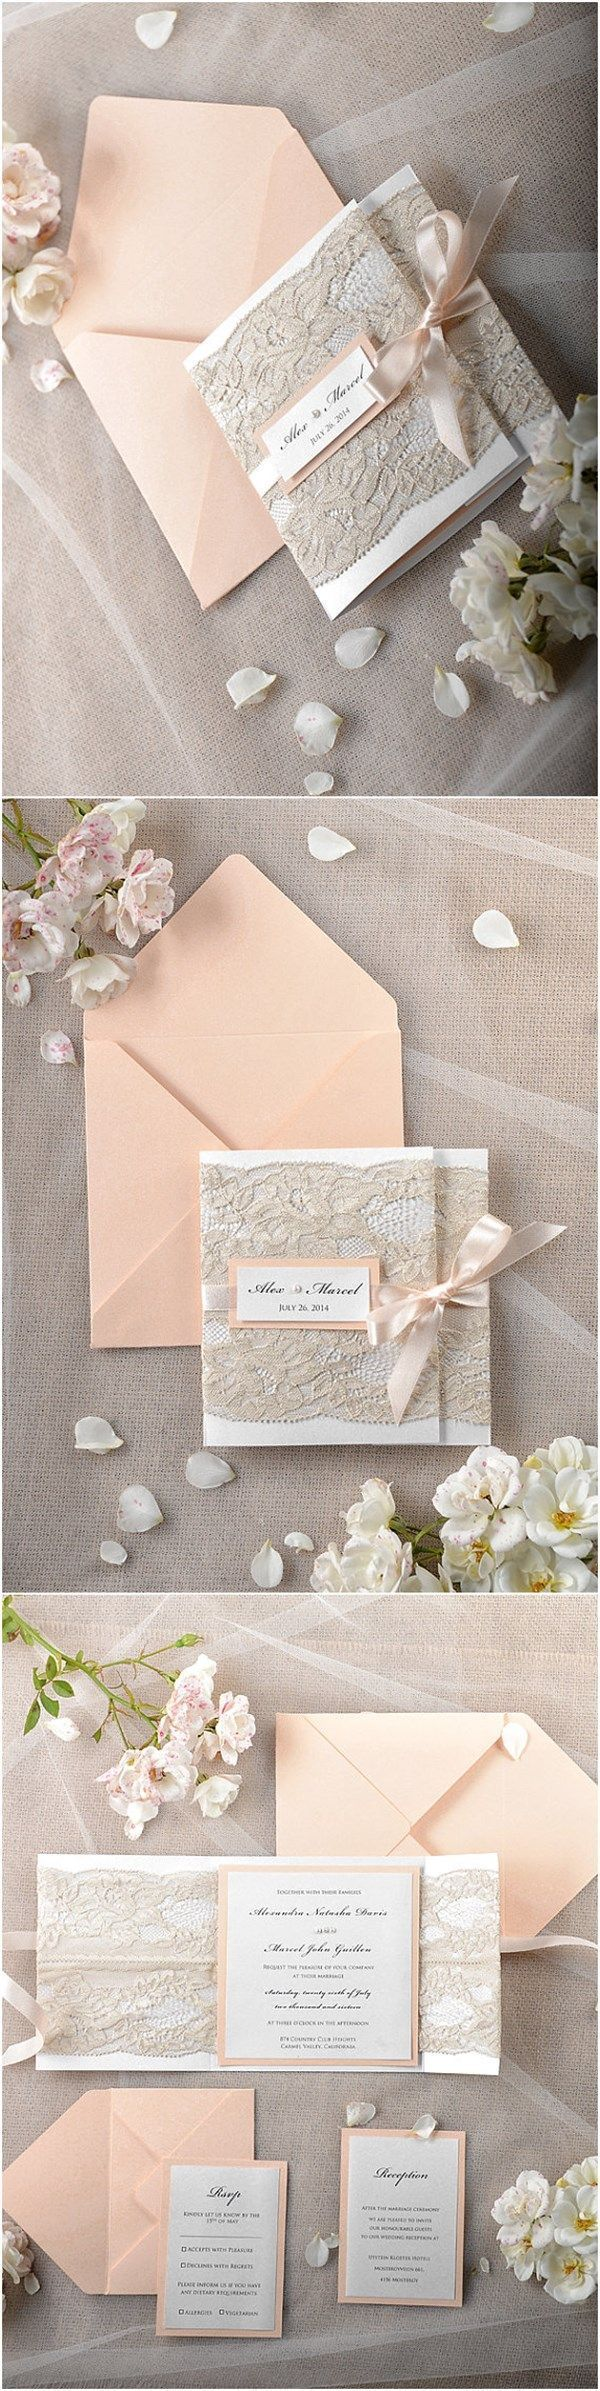 David's Bridal PINvitation Sweepstakes: Enter to win up to $1,000 to spend on Invitations by David's Bridal! http://cur.lt/1SVuDiv [Promotional Pin]